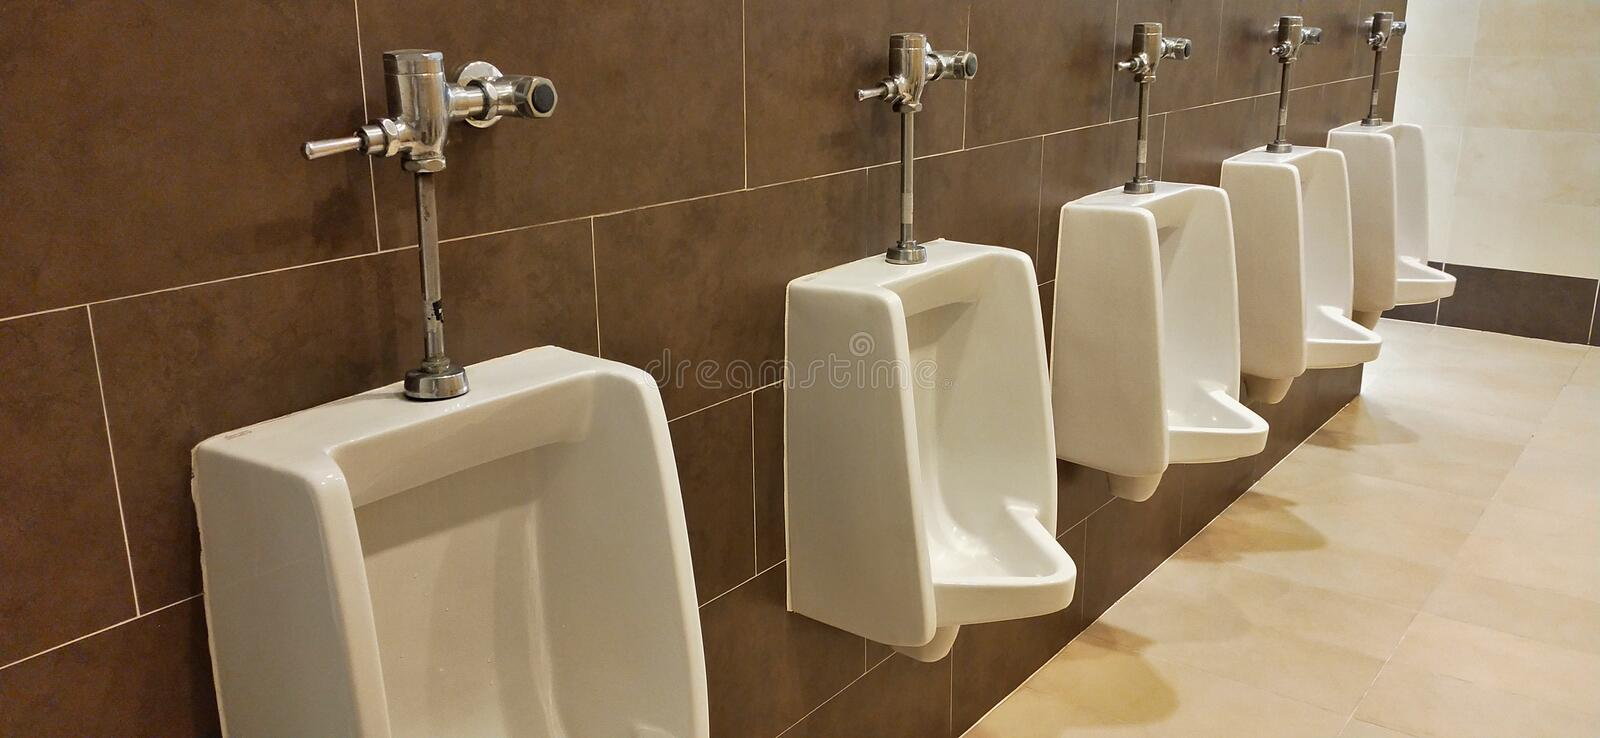 Row of Urinal with brown wall in male restroom royalty free stock photography